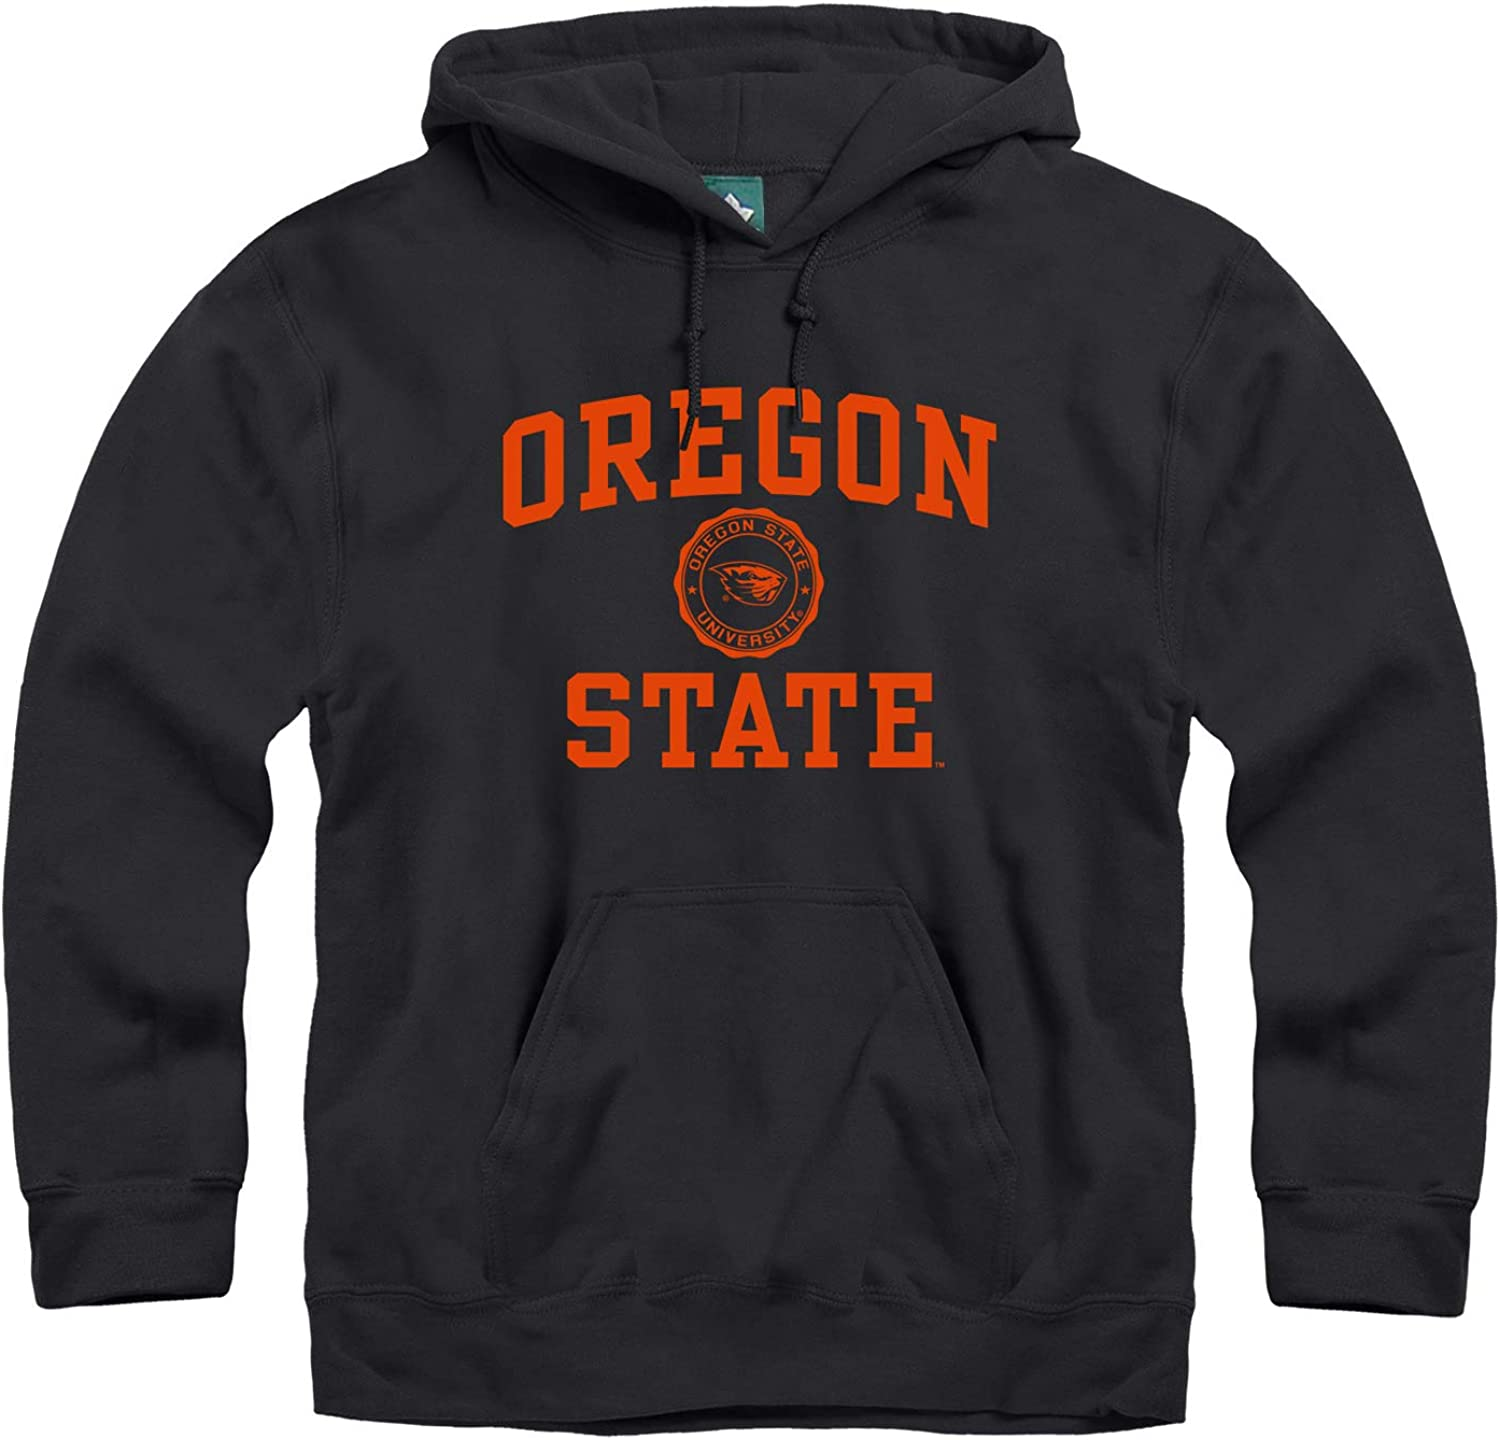 Ivysport Hooded Sweatshirt, Mens and Womens, School Color, Heritage Logo, NCAA Colleges and Universities